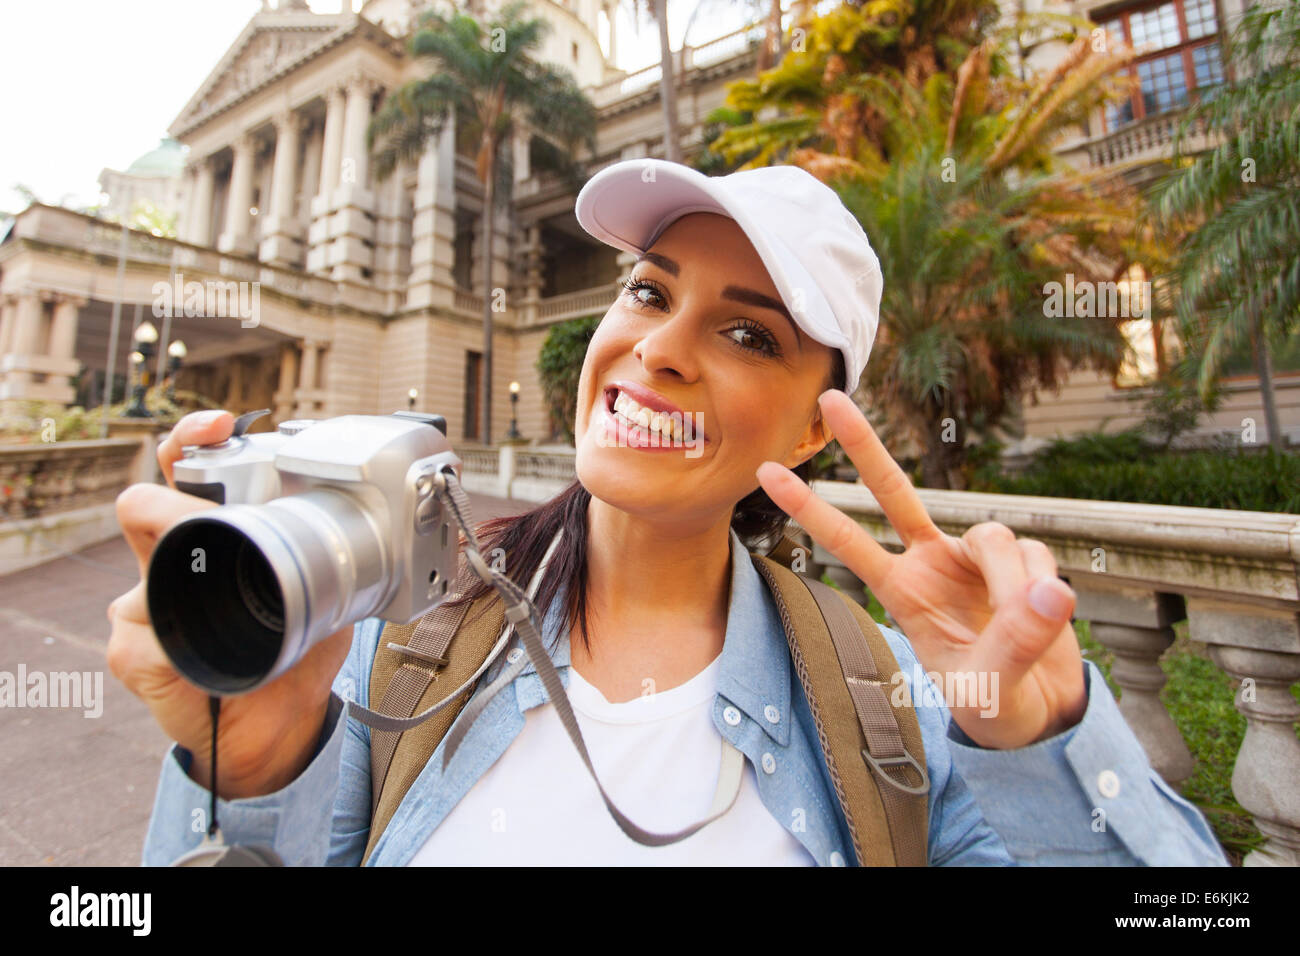 happy young traveller posing in front of an historical building - Stock Image